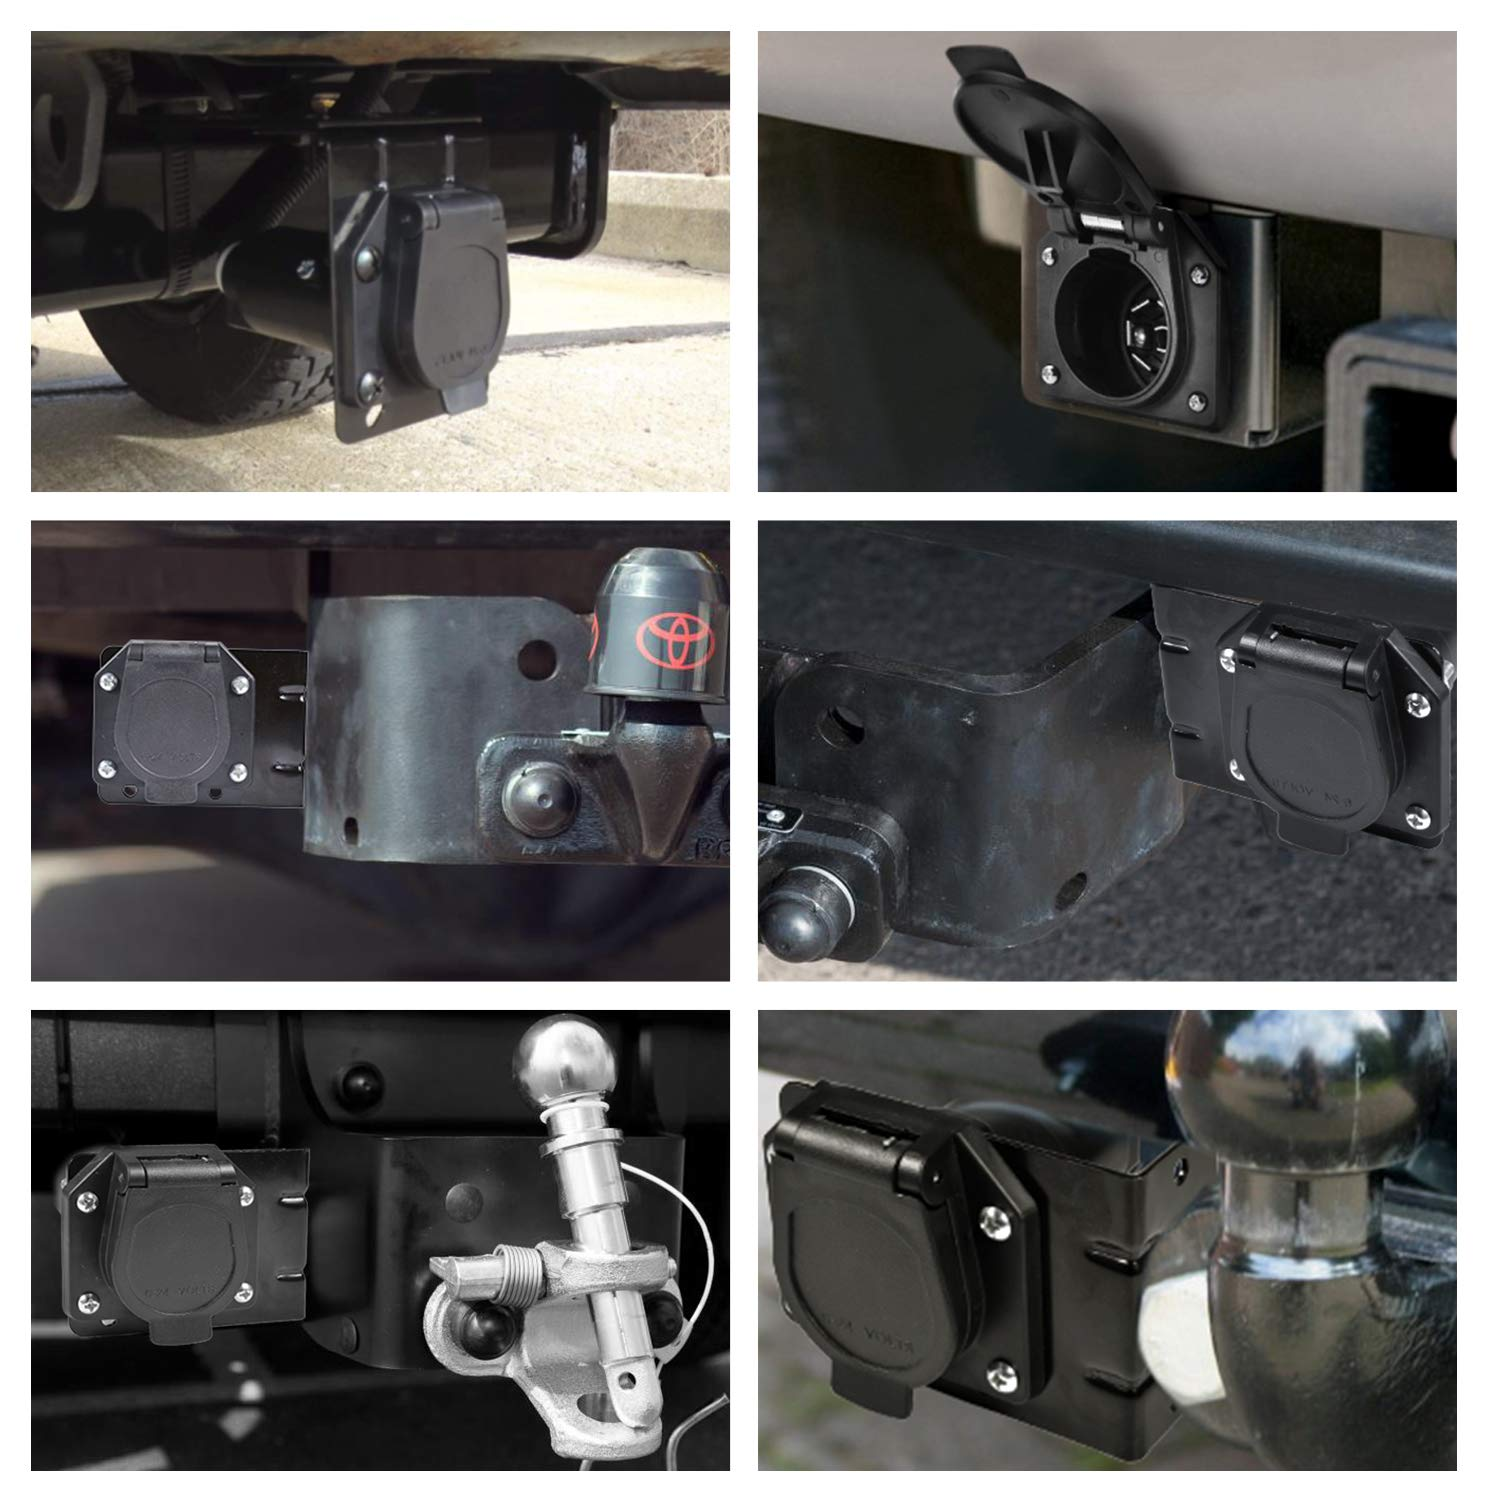 Reverse Plug with Mounting Bracket for Towing Solutions MENKEY 4 Flat Truck to 7 Way Blade Trailer Light Adapter